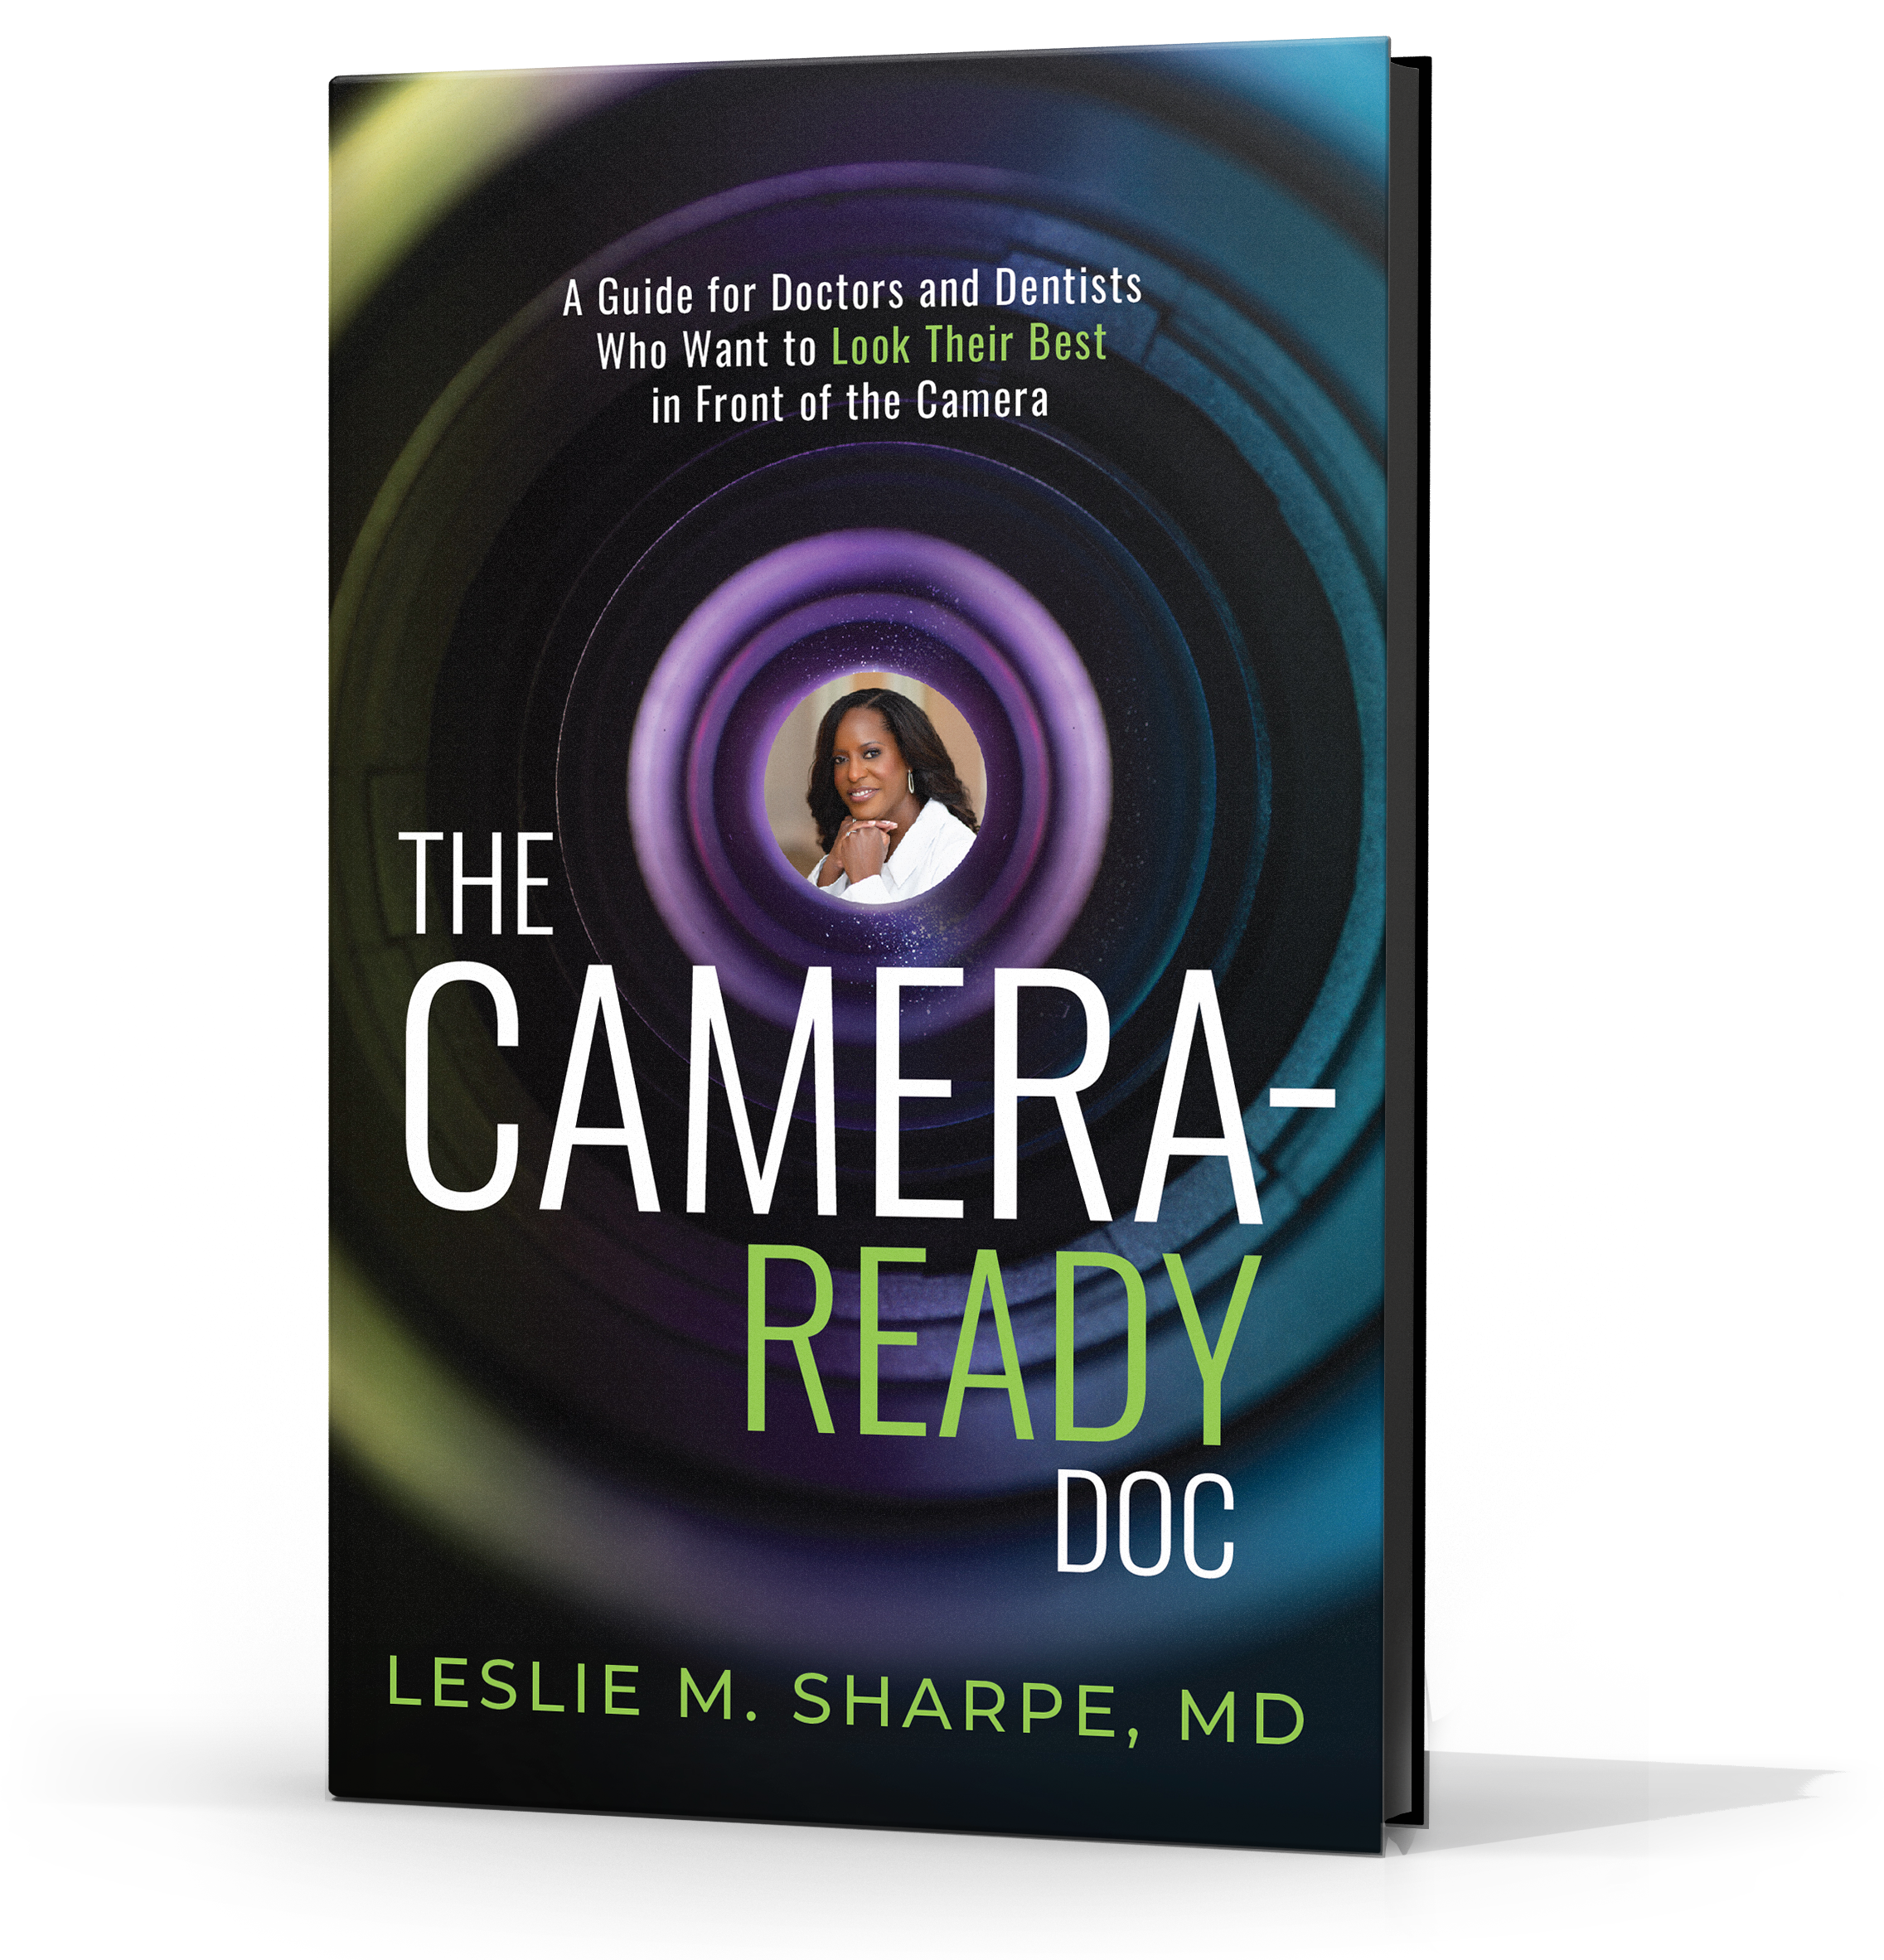 Physician and Bestselling Author Releases Book to Help Doctors and Dentists Upgrade Their Image